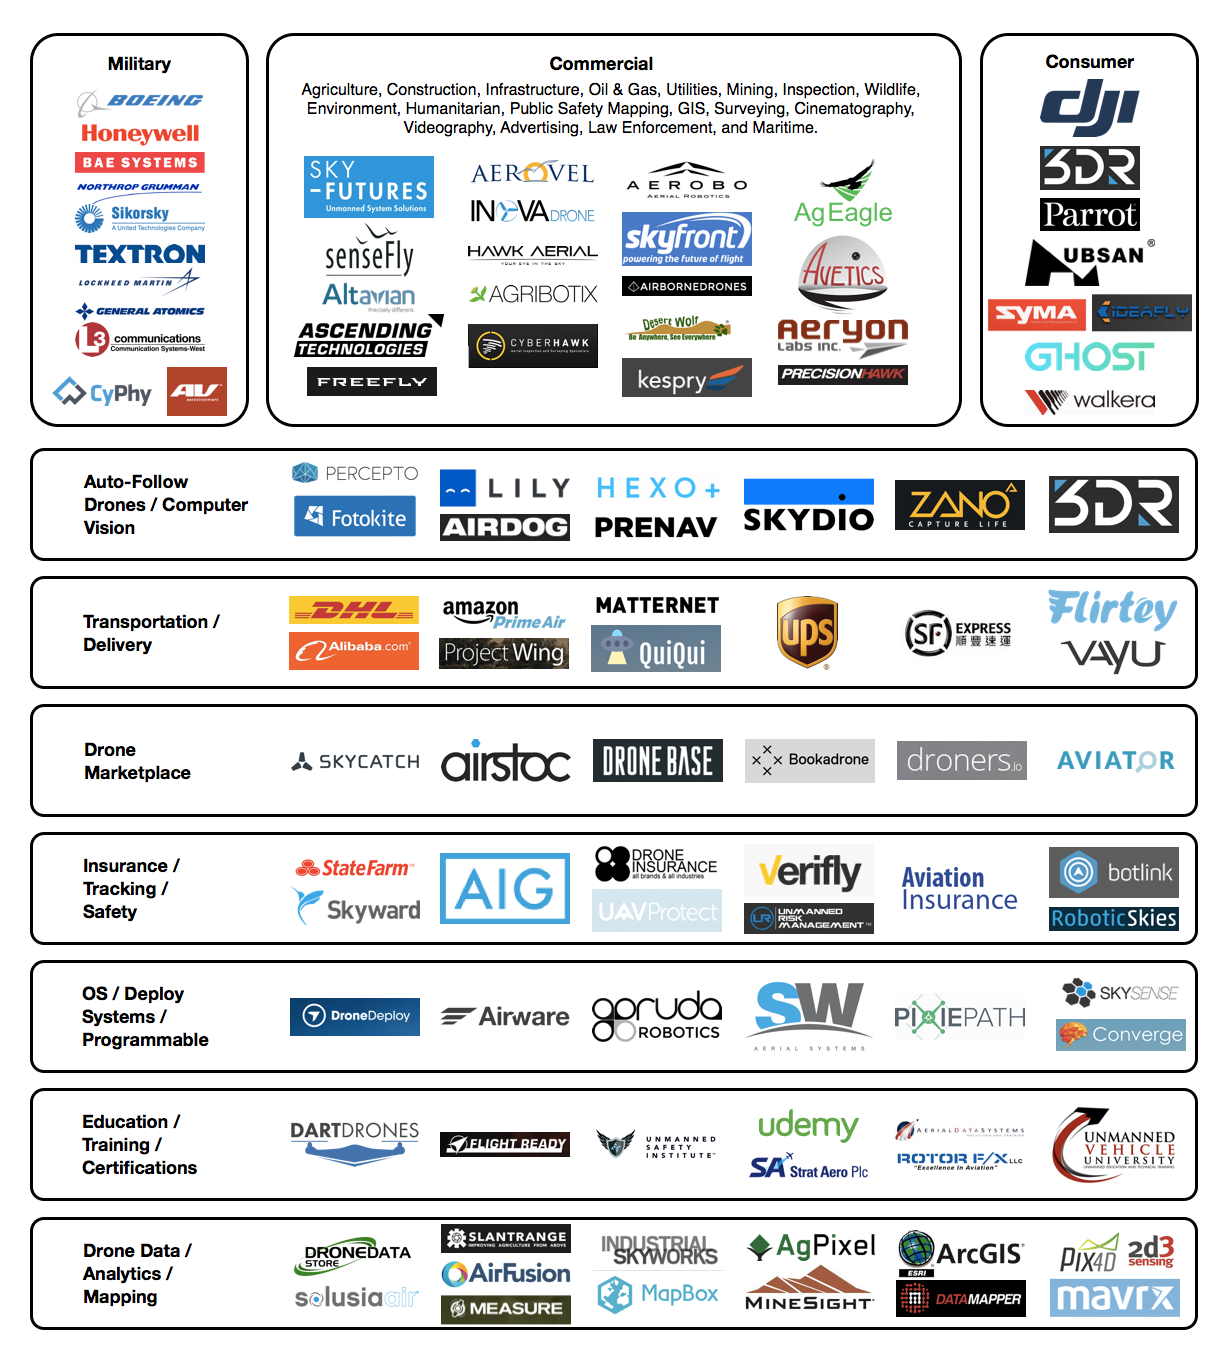 Drone Market Ecosystem Map Chris Mccann Medium